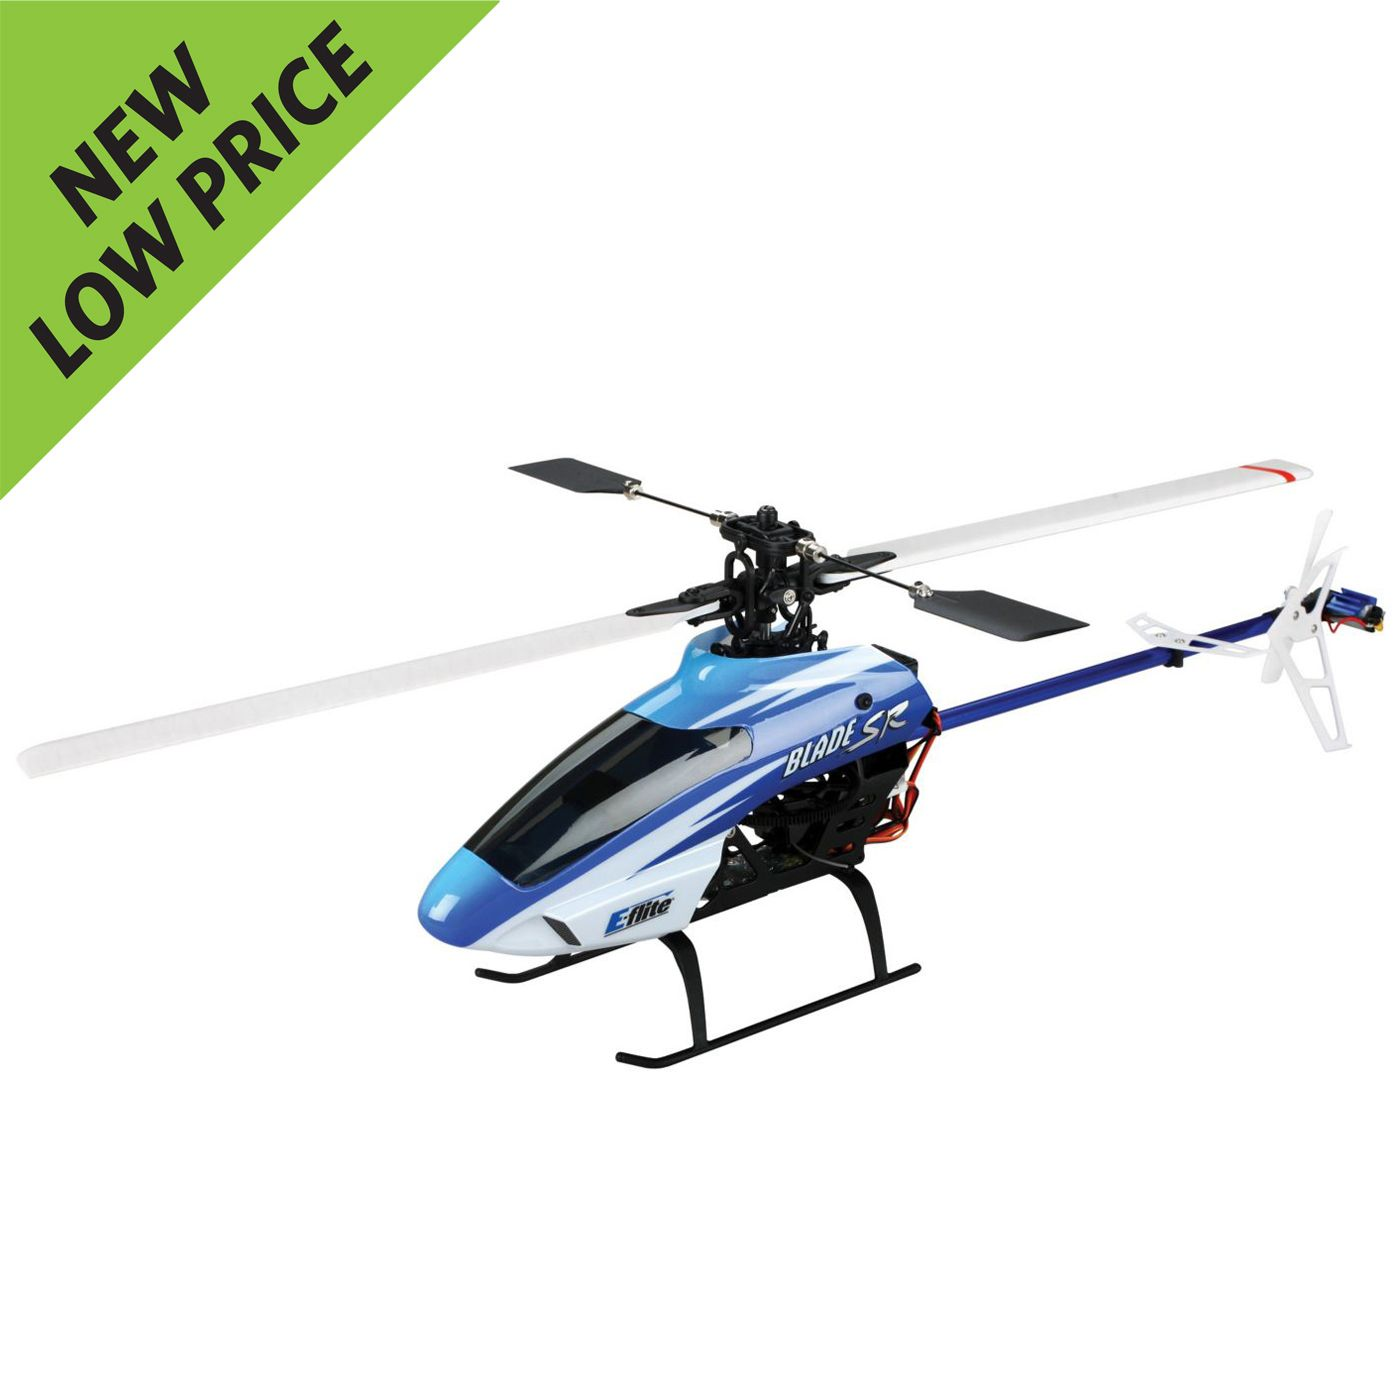 medium resolution of image for blade sr rtf electric micro heli from horizonhobby